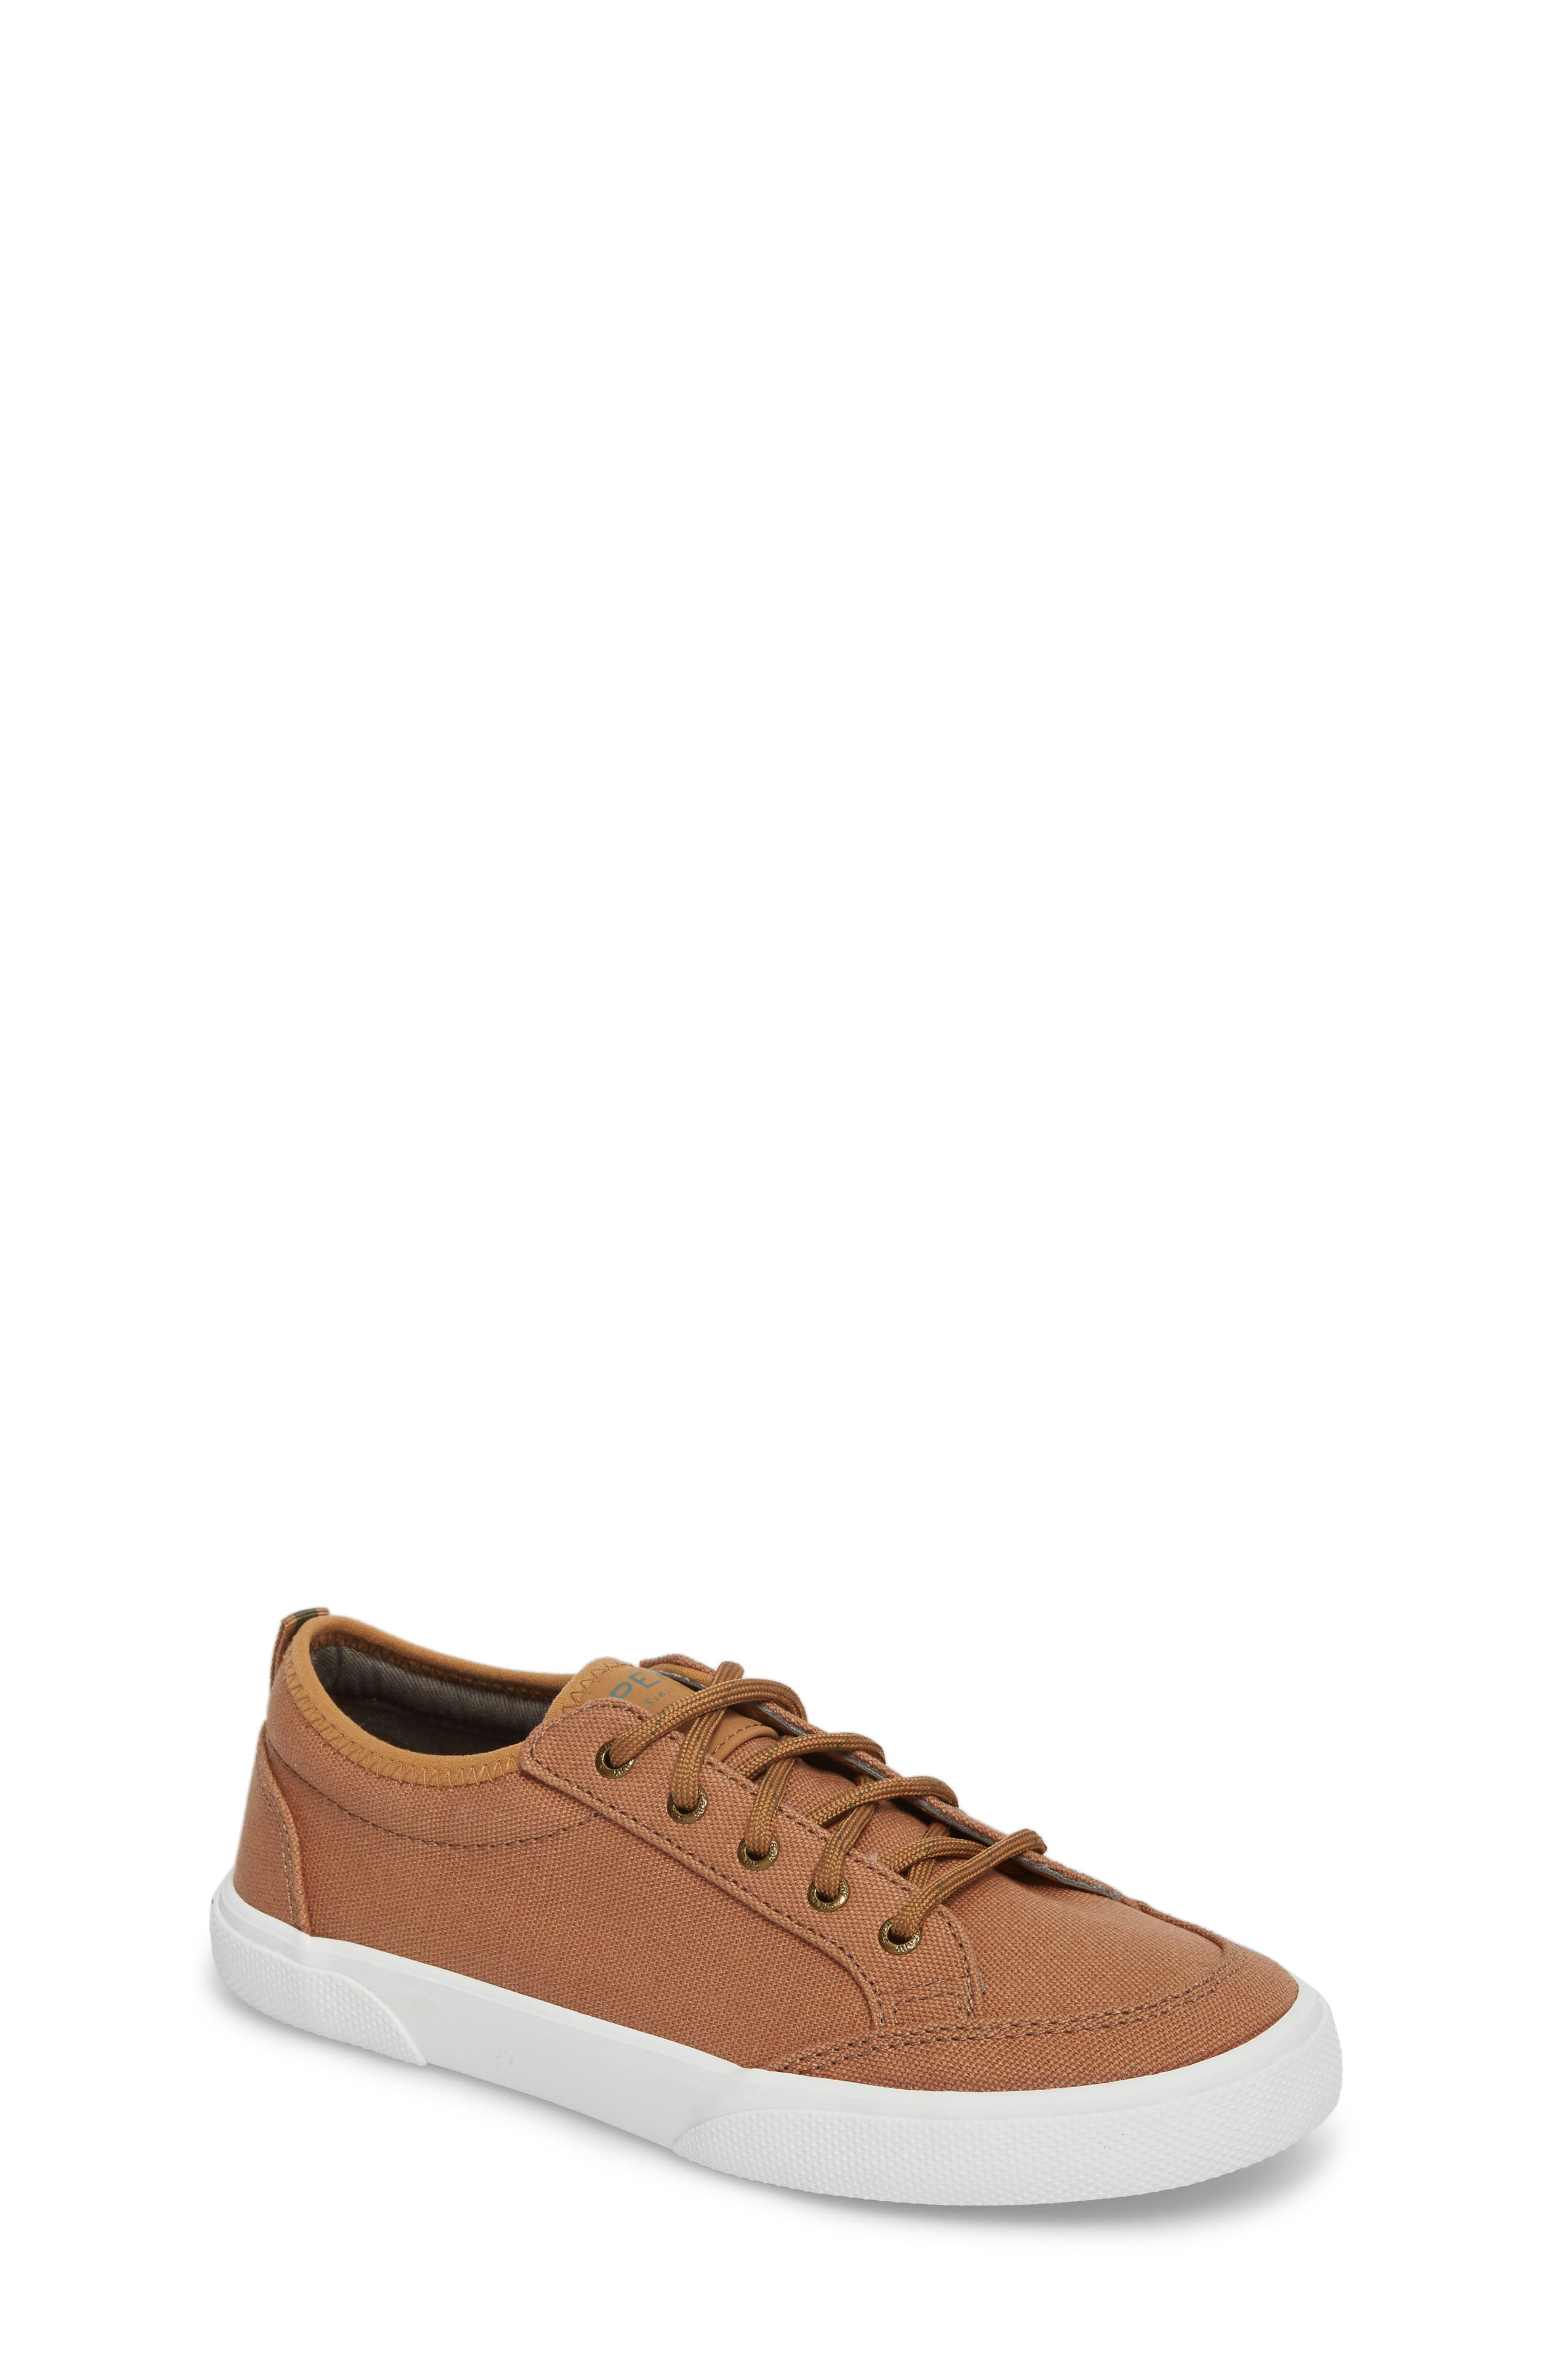 Sperry Deckfin Sneaker,                             Main thumbnail 1, color,                             200